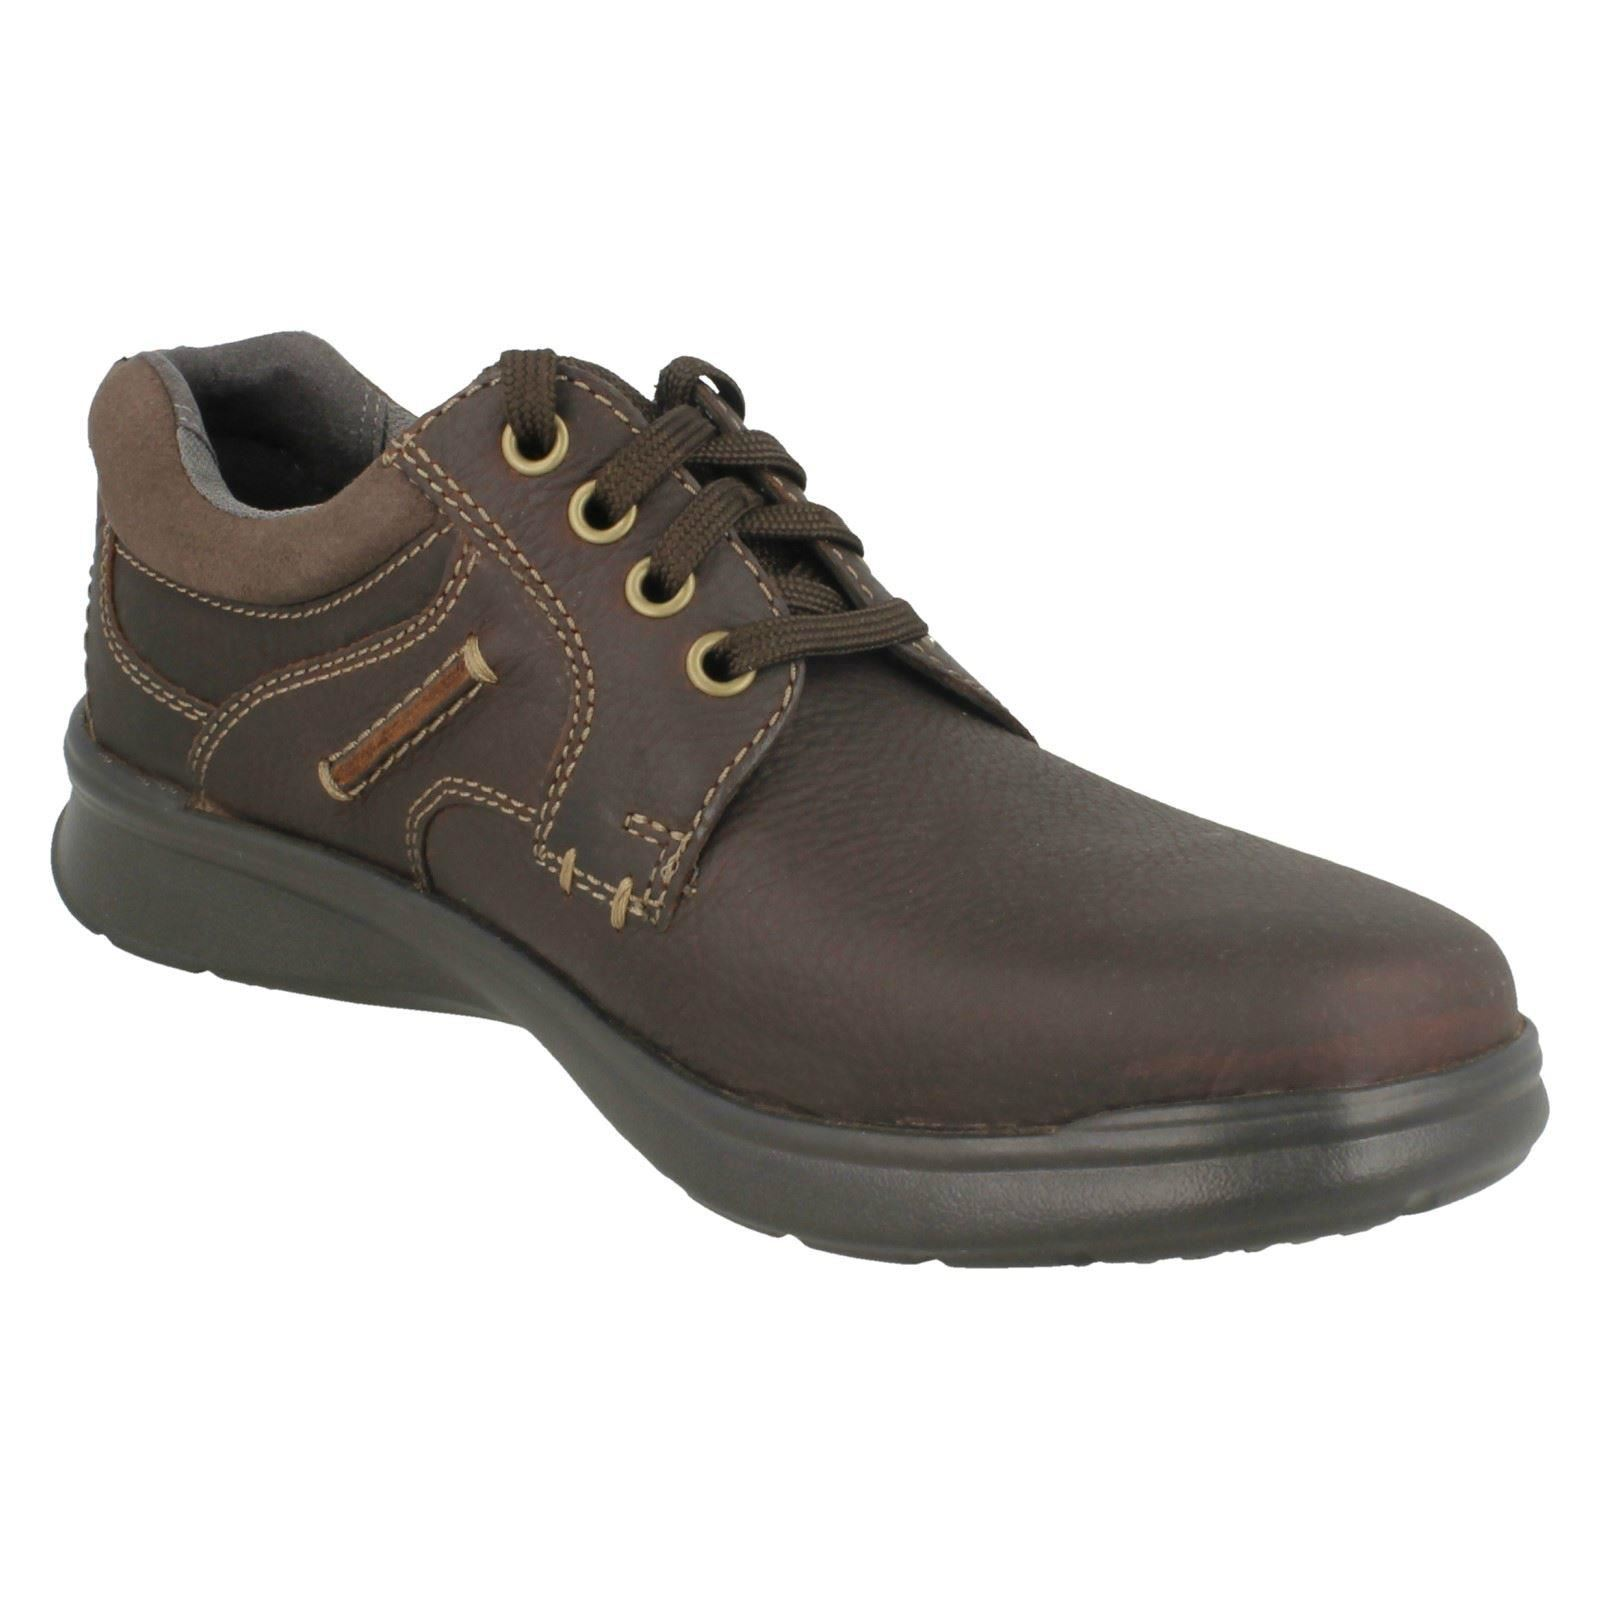 Up Uomo Cotrell Plain Lace Up  Schuhes By Clarks 3b8f87